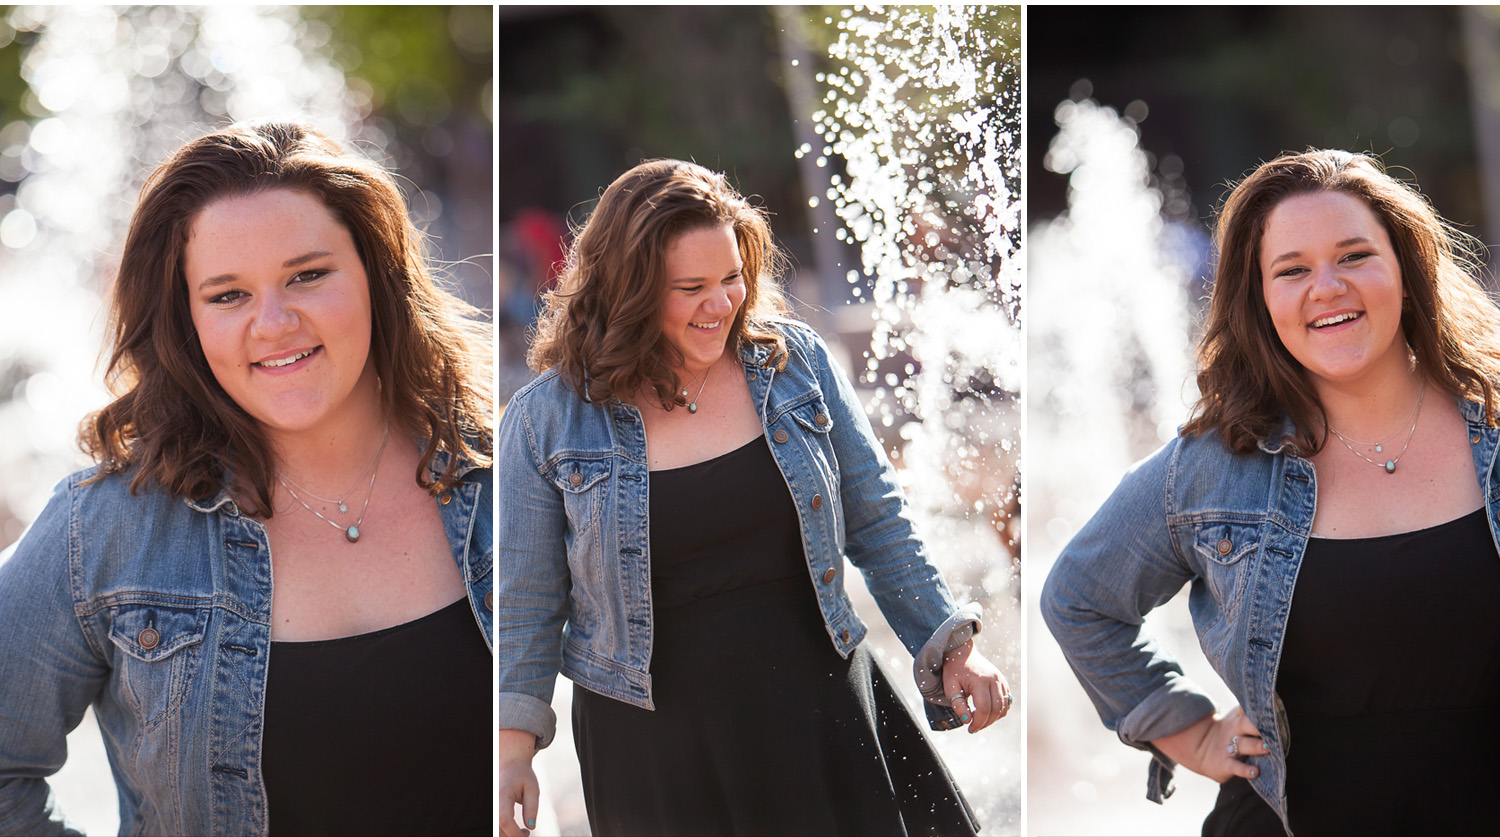 senior pictures near fountains at Union Station in Denver